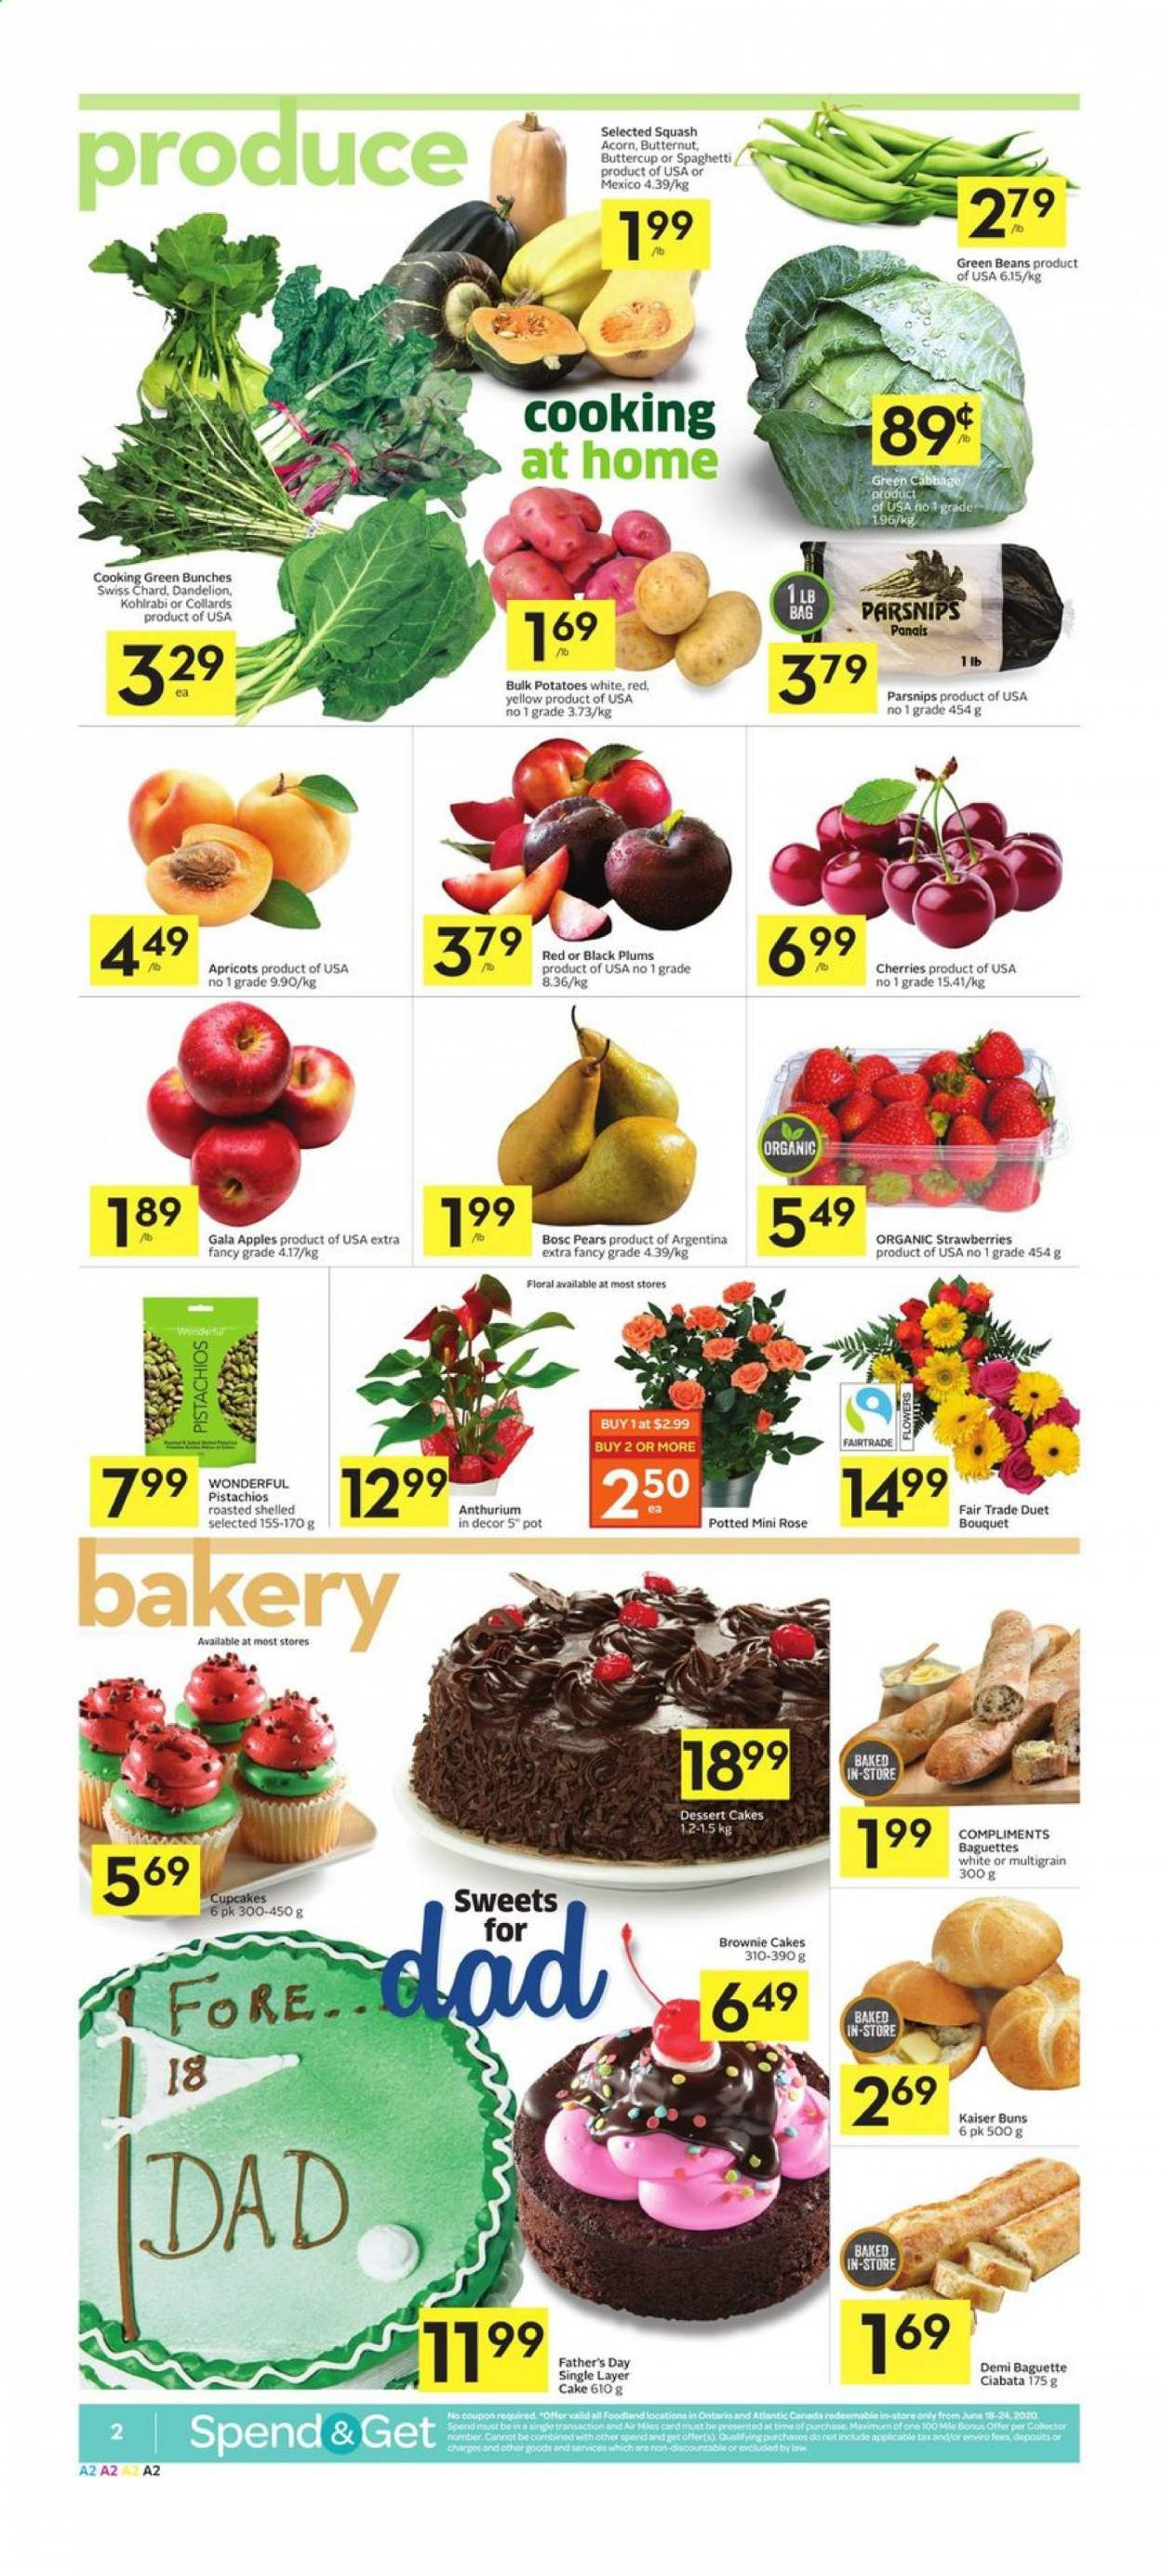 Foodland Flyer  - June 18, 2020 - June 24, 2020. Page 2.